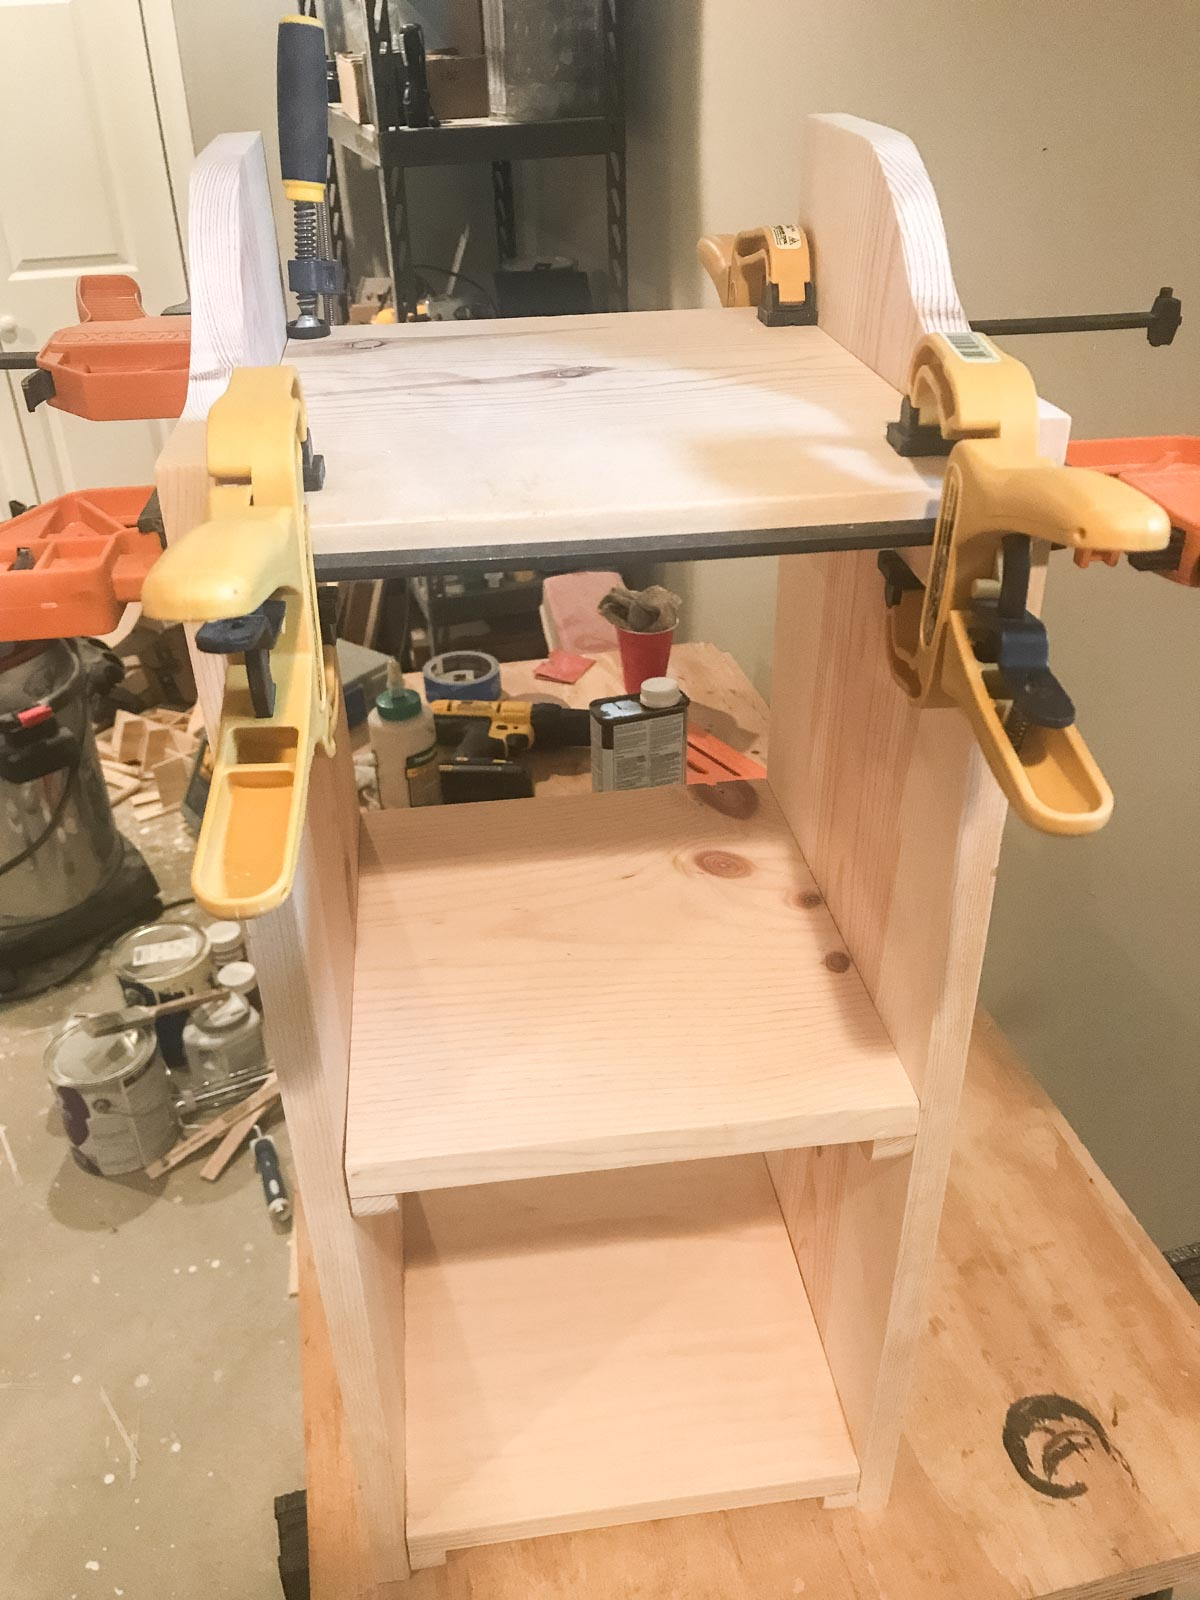 clamping down shelf to bookshelf